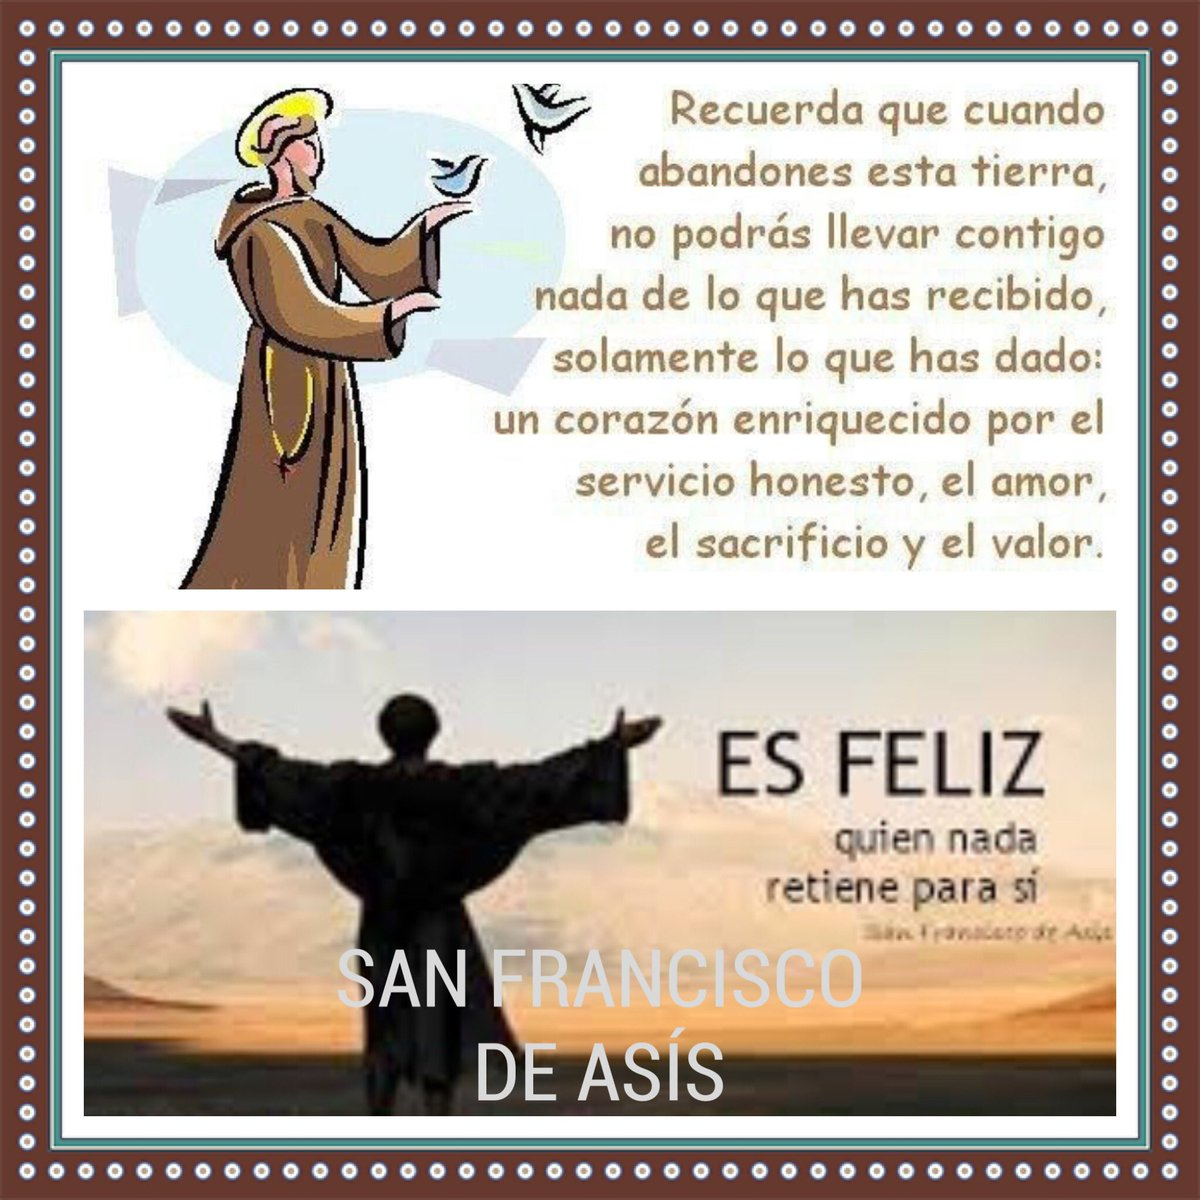 San Francisco De Asis On Twitter Frases De San Francisco De Asis